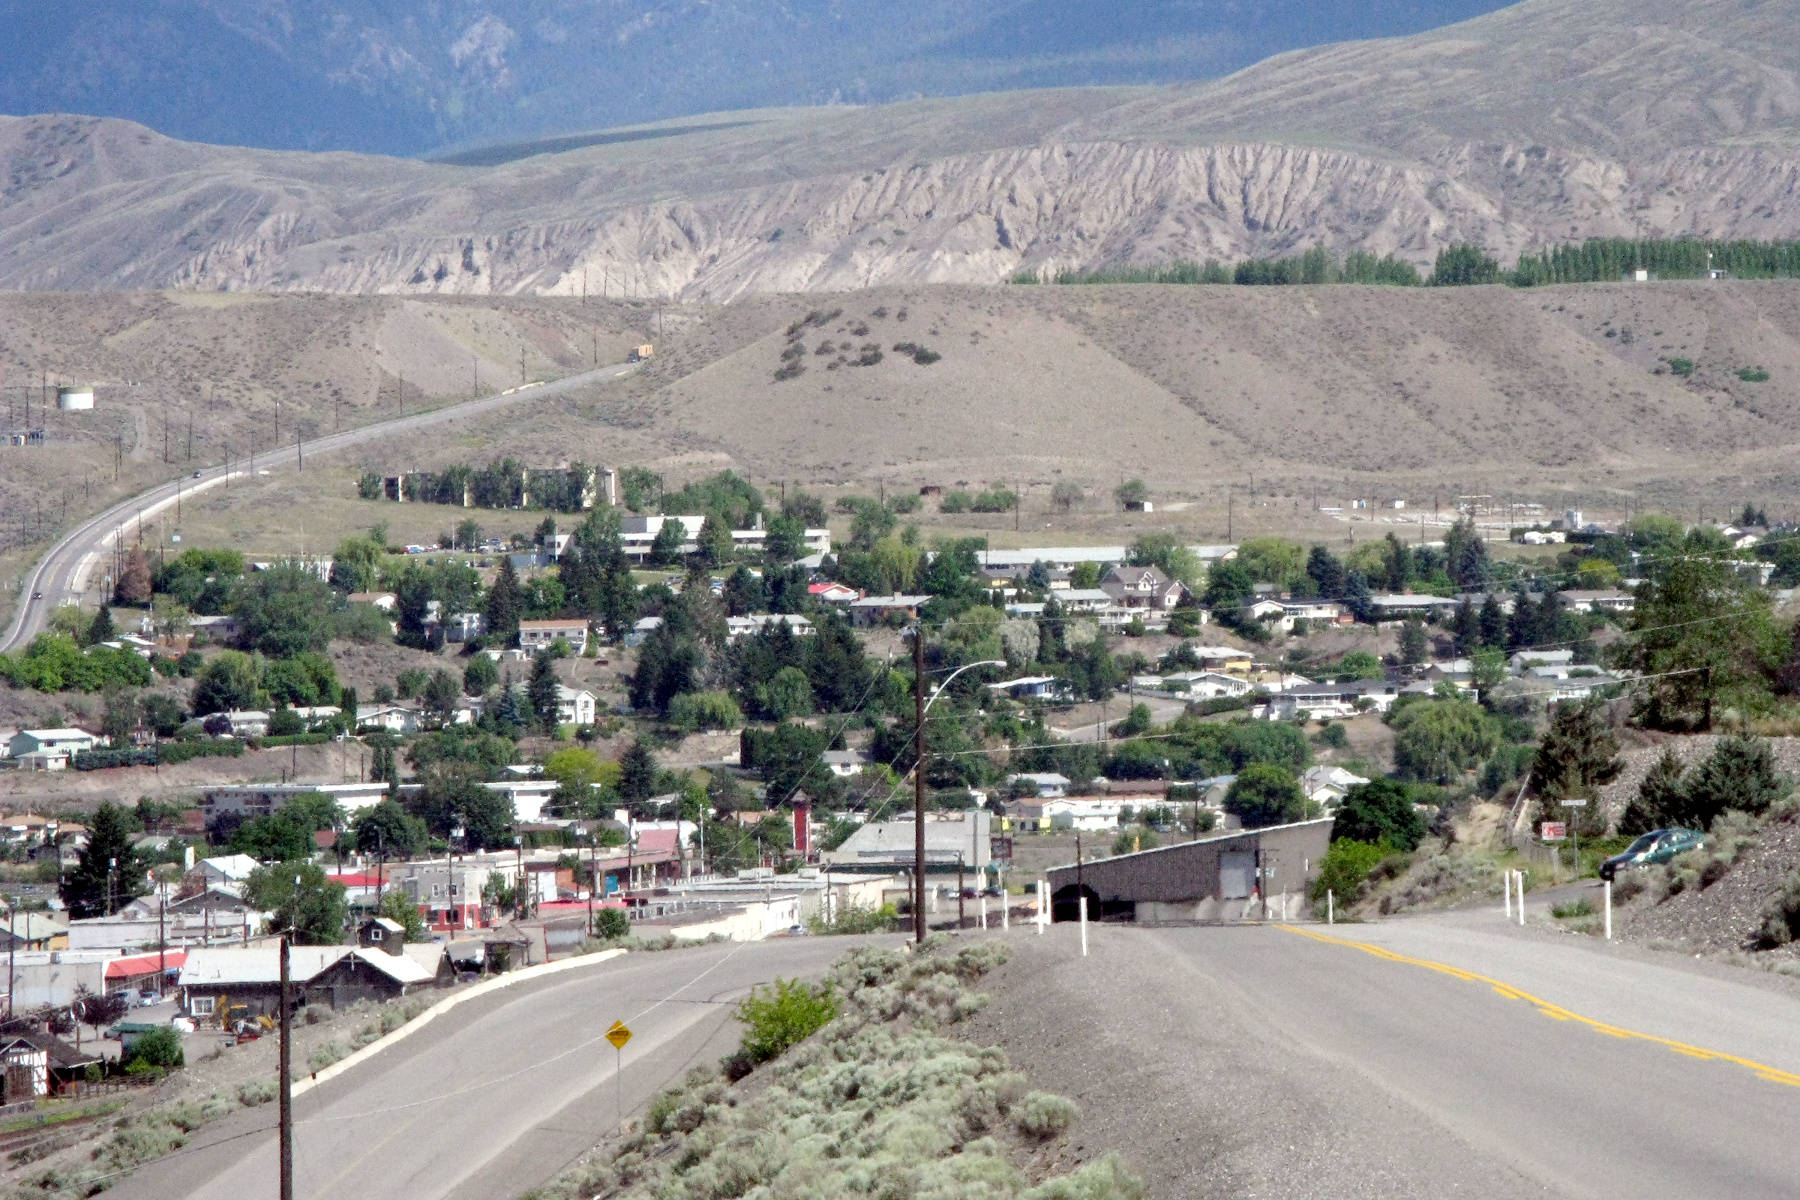 The community of Ashcroft is one of many scenic destinations in British Columbia. (John Arendt - Black Press)